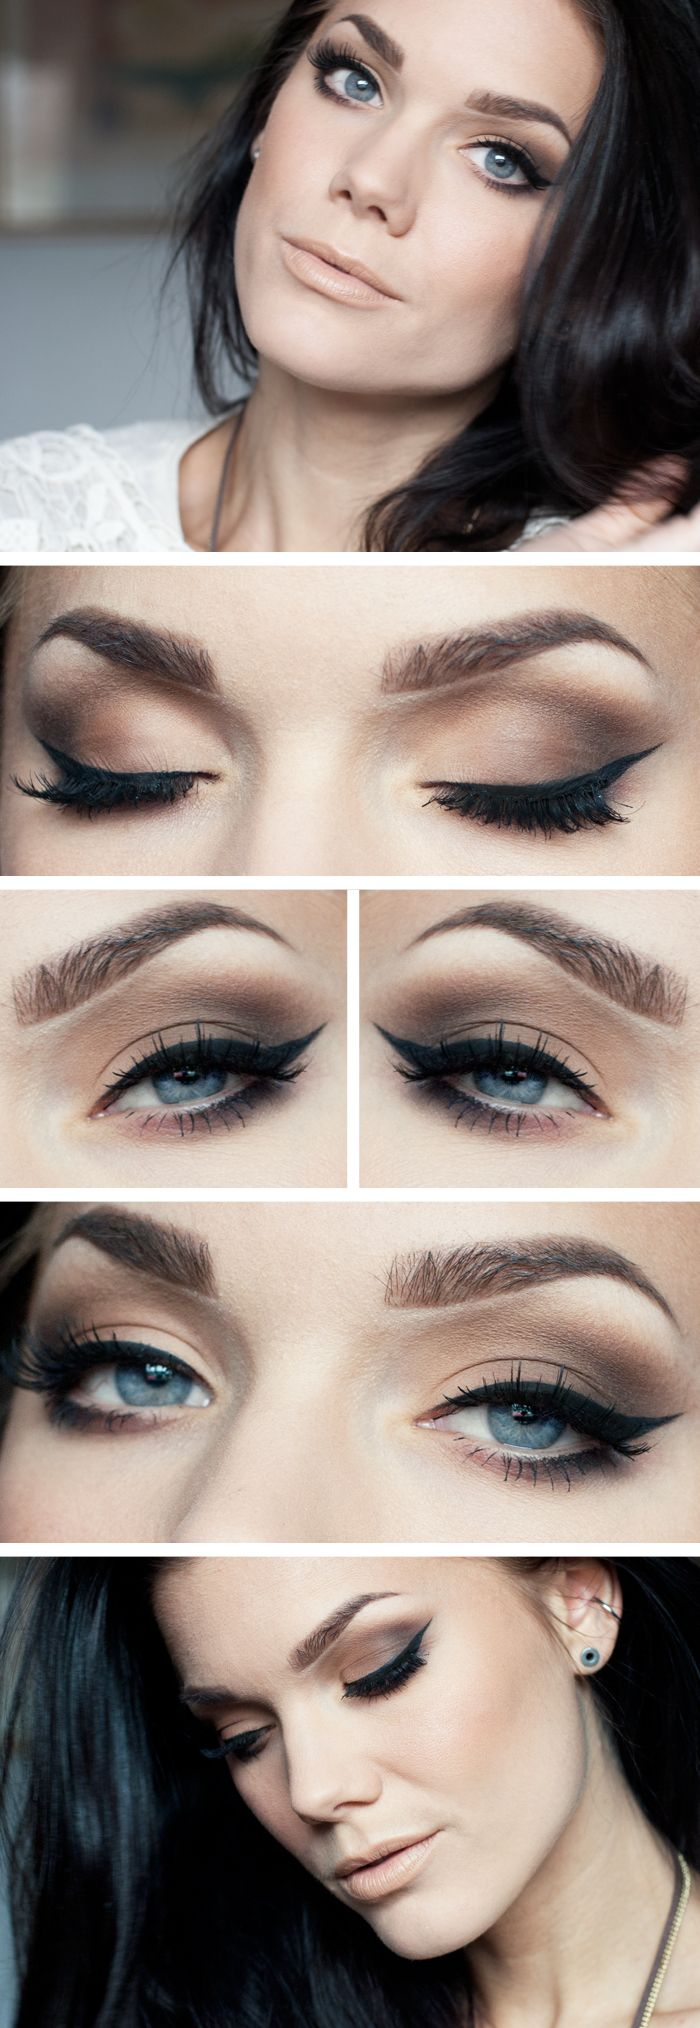 """Today's look : """"Restless Nights"""" ( a beautiful natural everyday smokey eye using the Anastasia brow pro palette as eyeshadow... love how this natural eye is paired with a nude lip. gorgeous!) 04/30/13"""